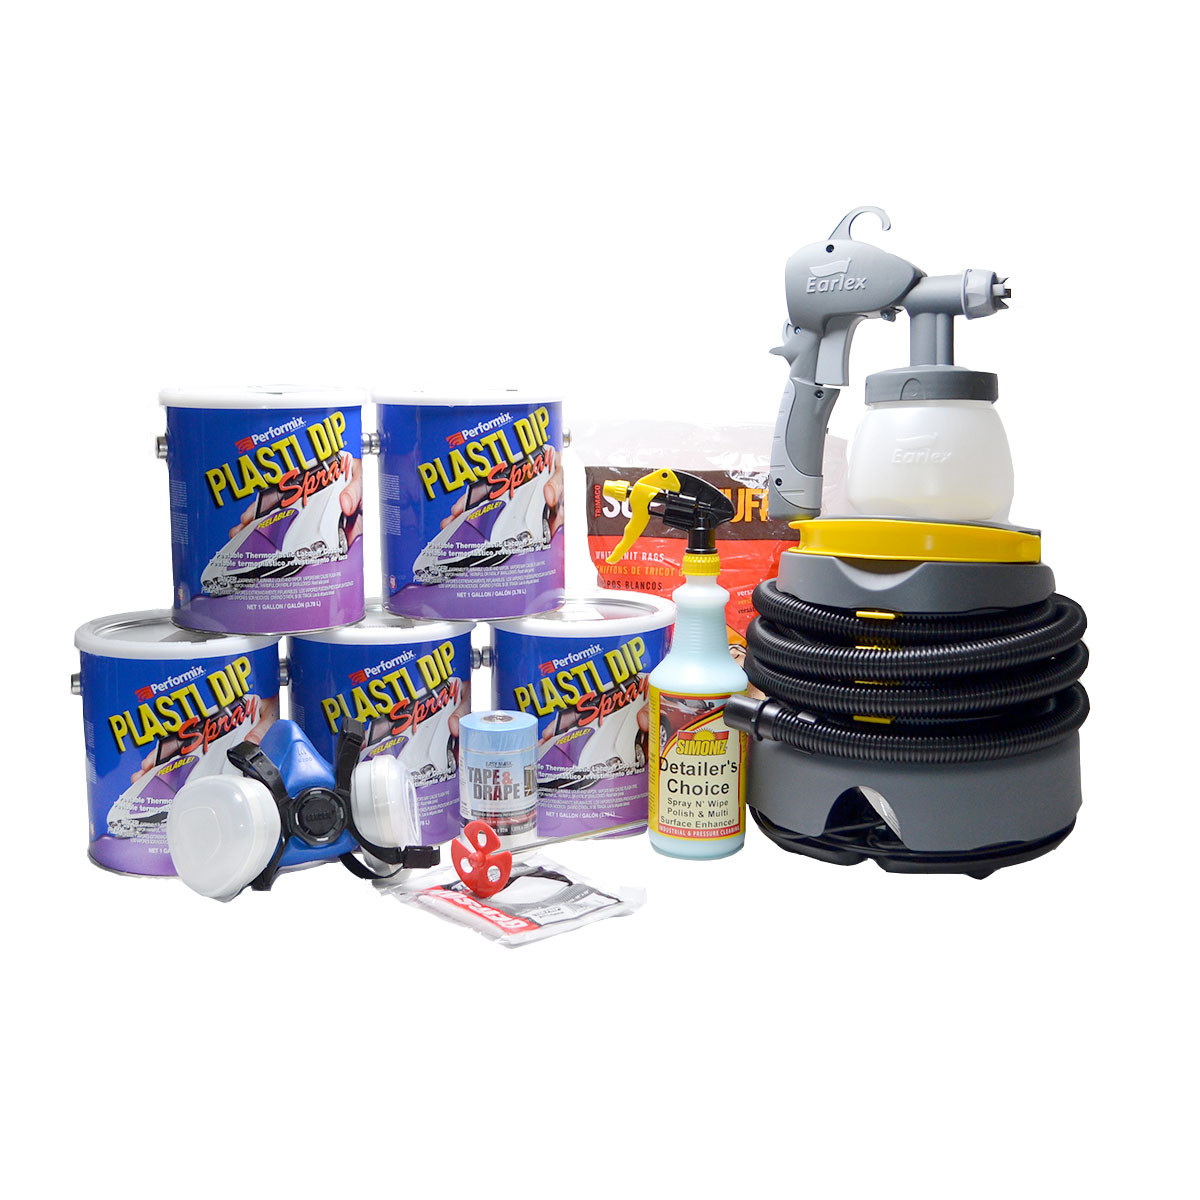 Plasti Dip Spray 5 Gallon Kit - Muscle Colors: Sprayer